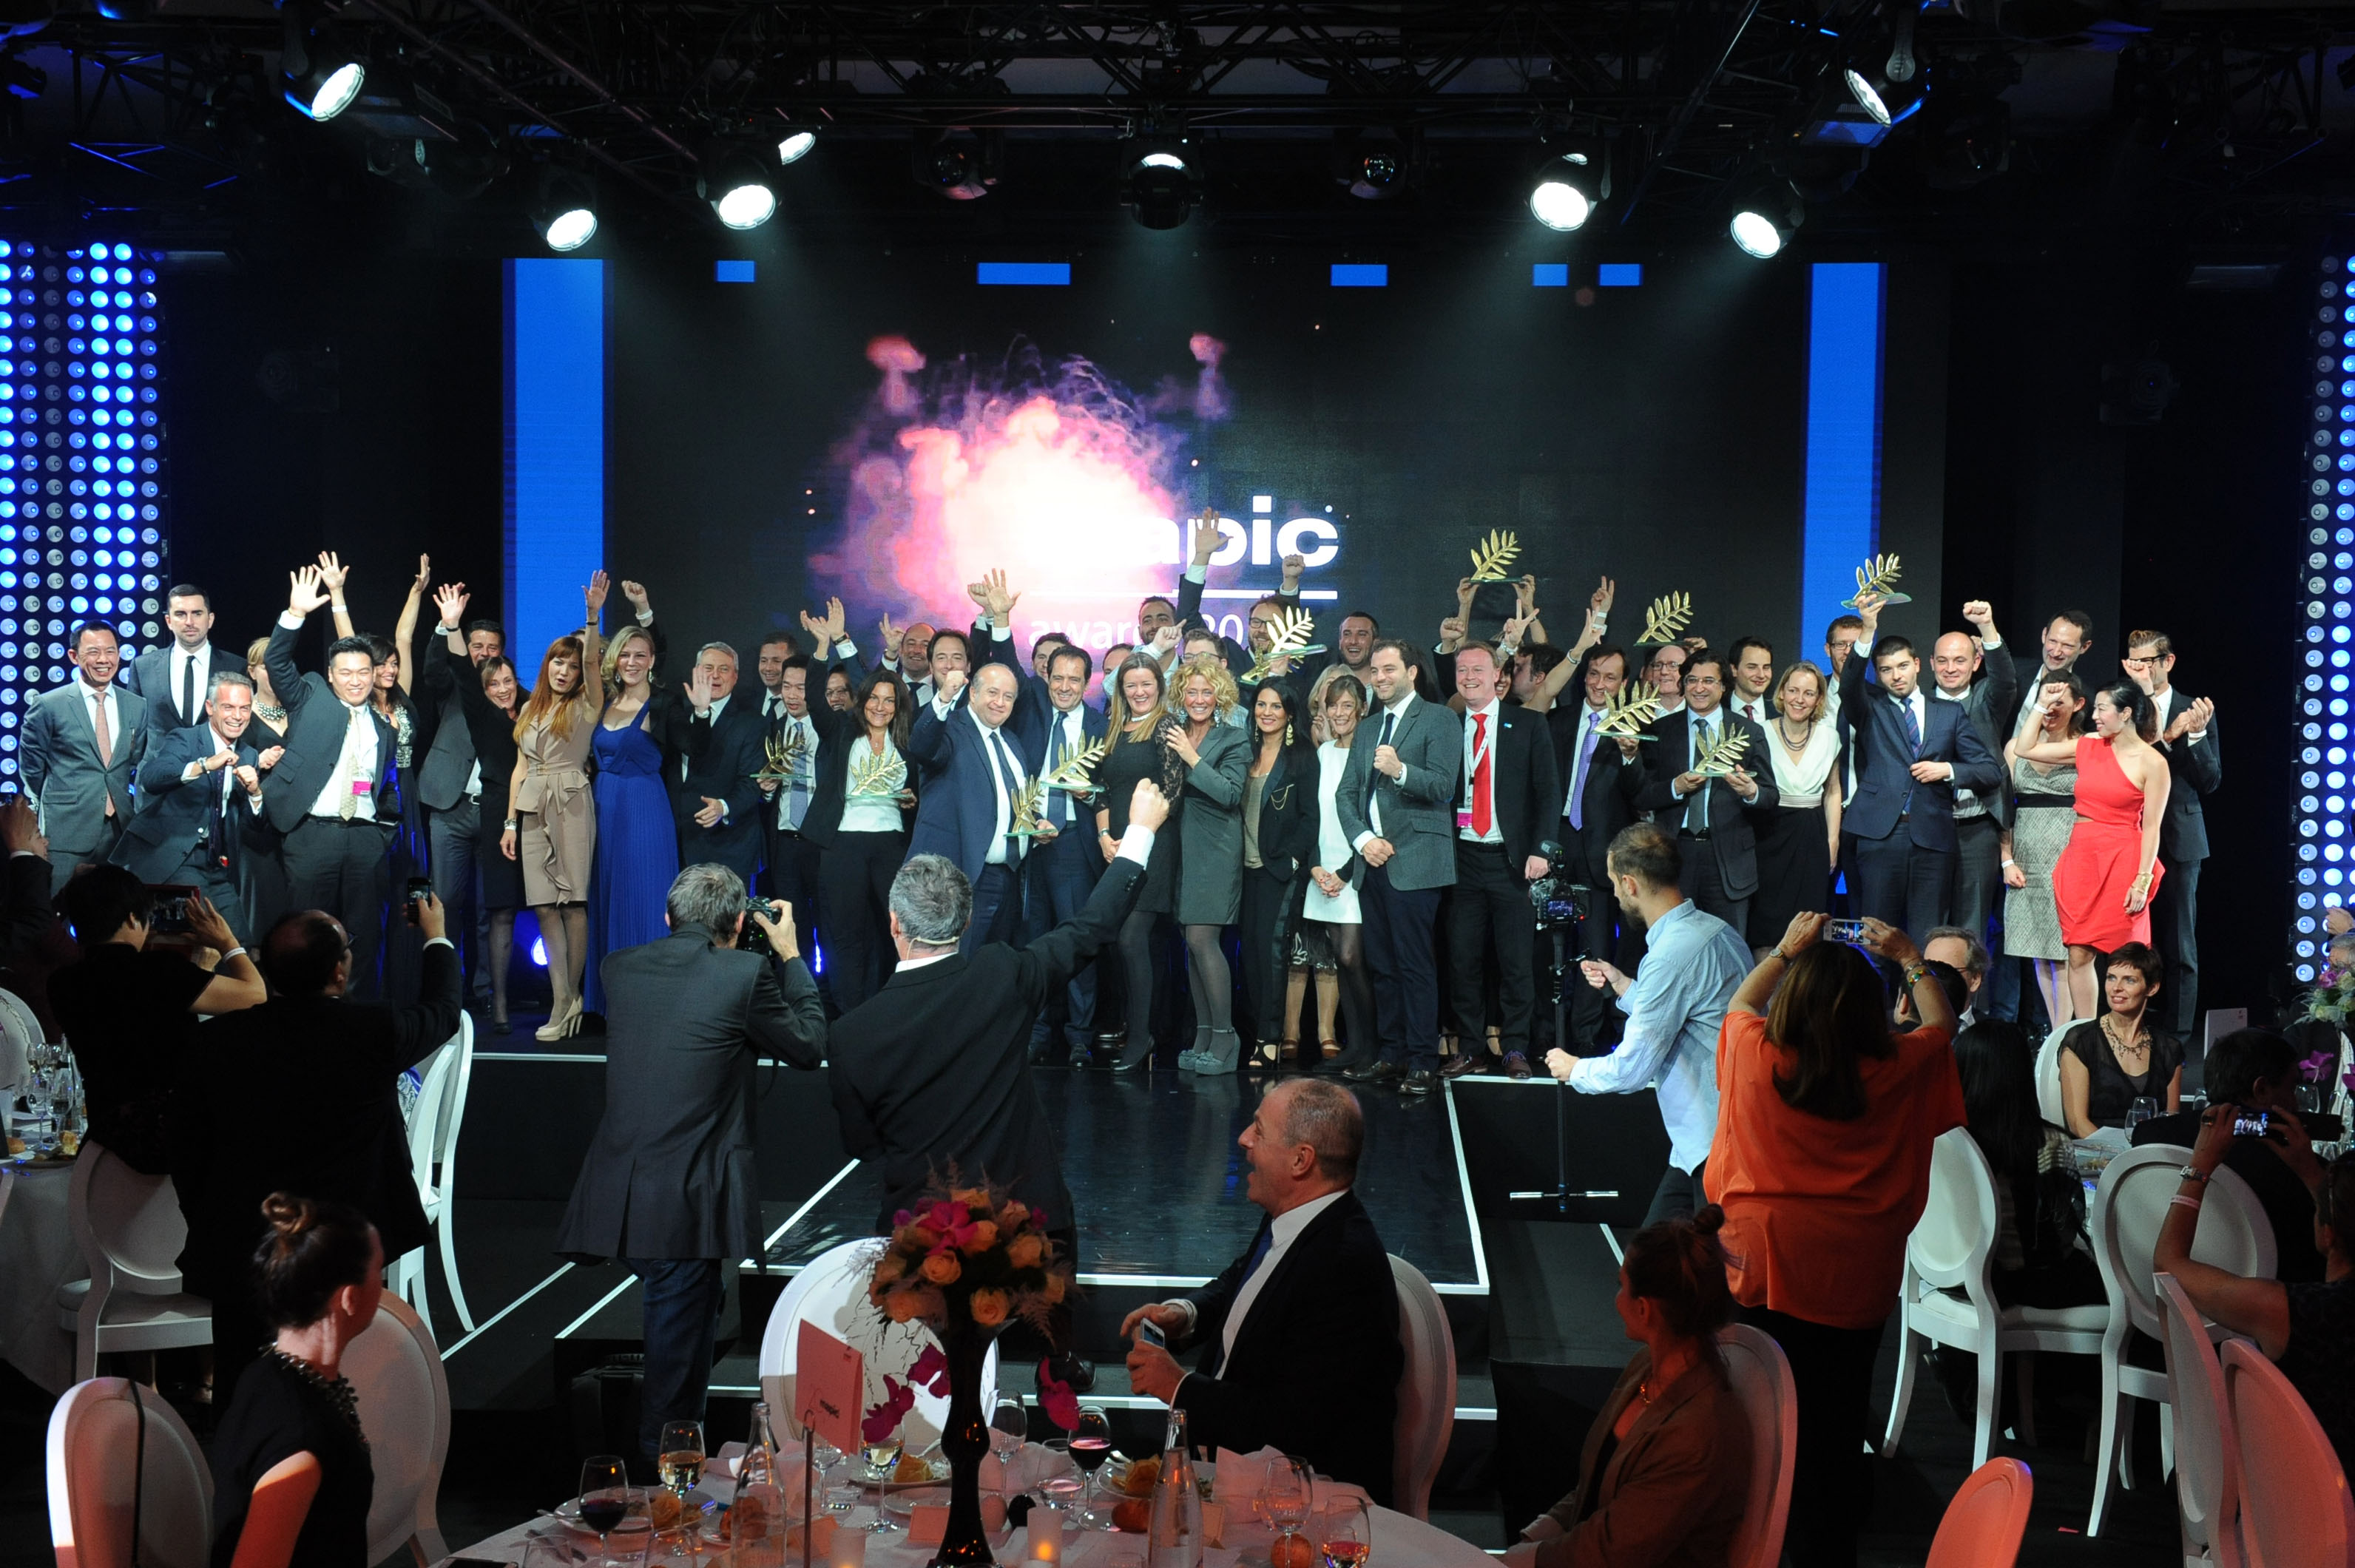 MAPIC 2014 - MAPIC AWARDS GALA DINNER AND PRIZE-GIVING - THE WINNERS